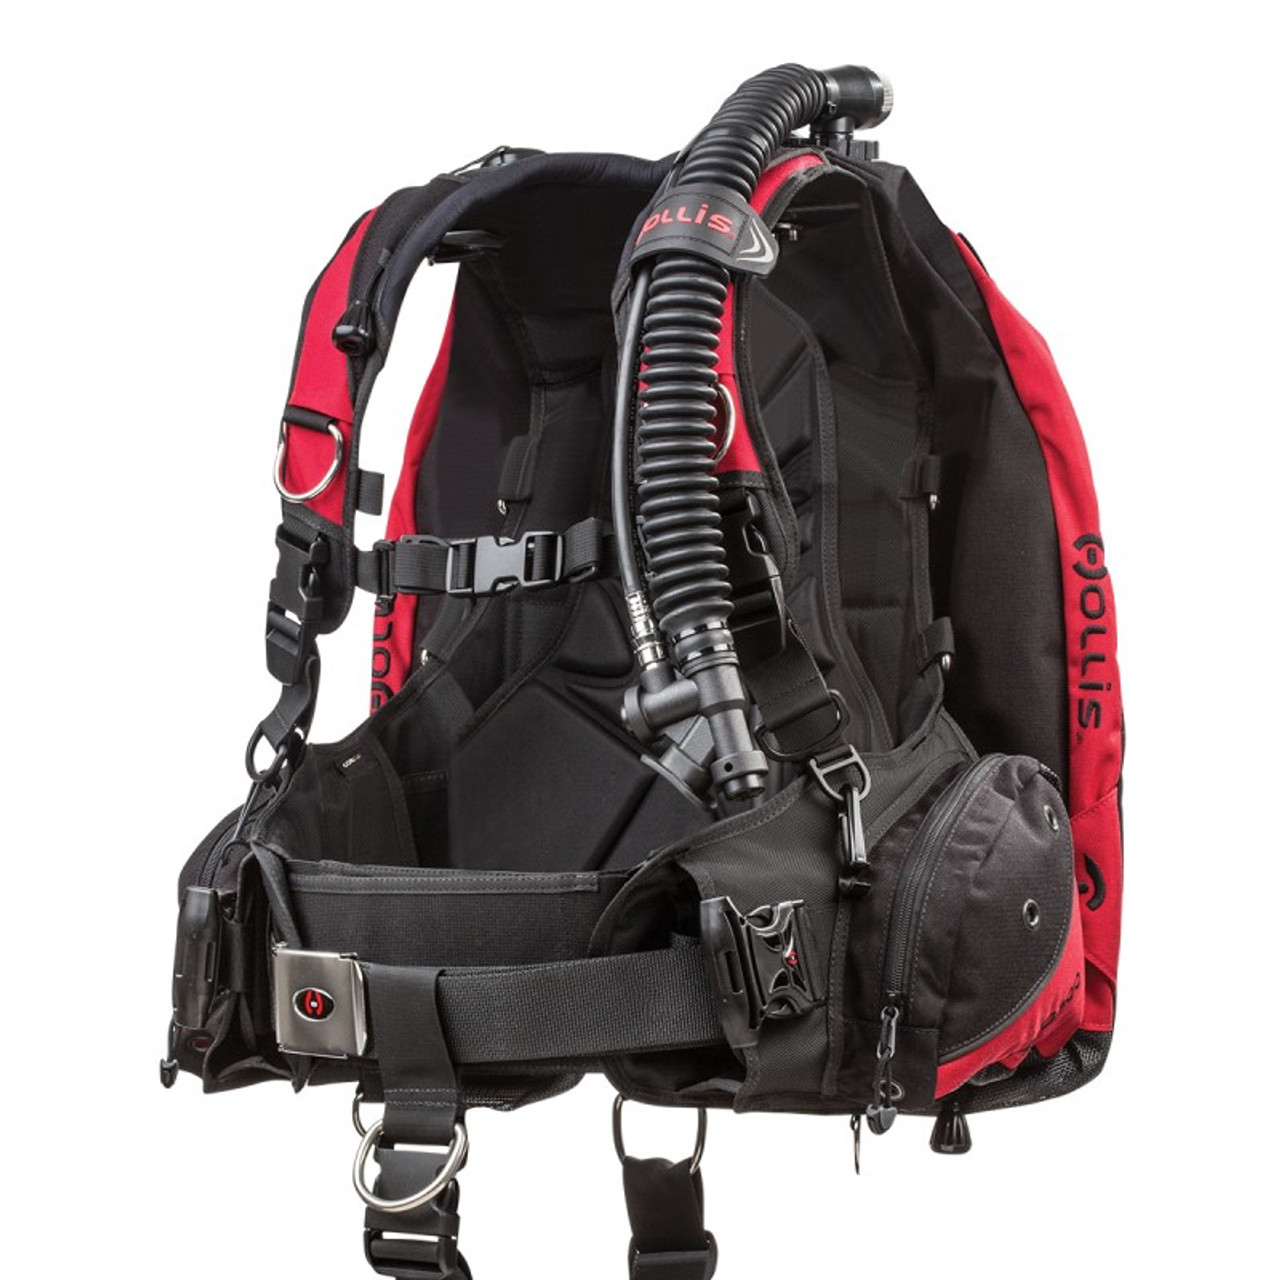 Hollis HD-200 BCD Scuba Dive Buoyancy Compensator